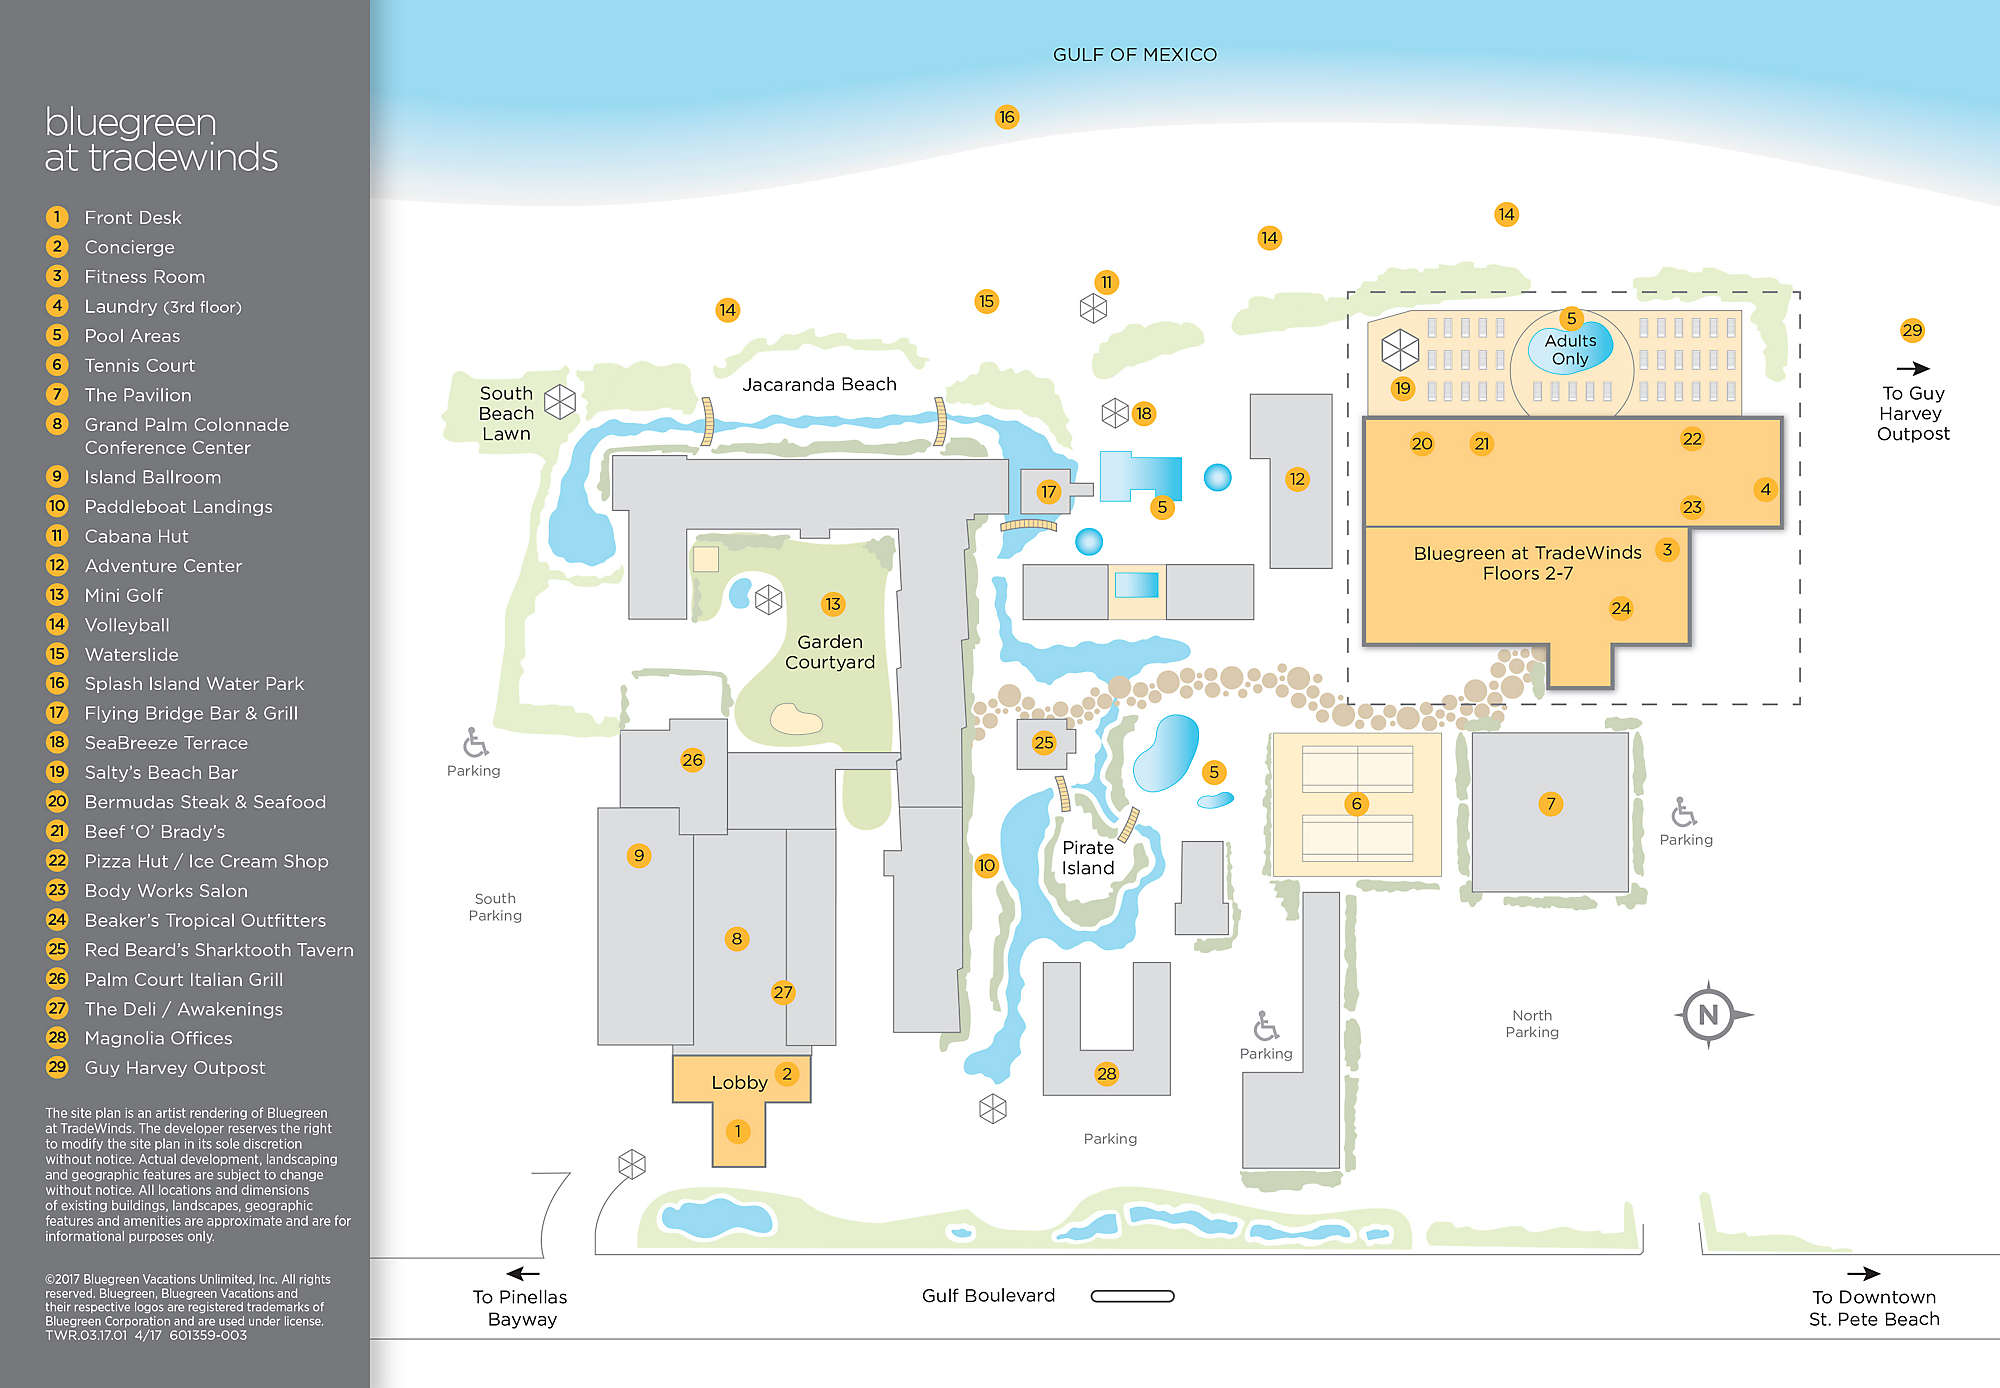 Bluegreen at TradeWinds Site Map